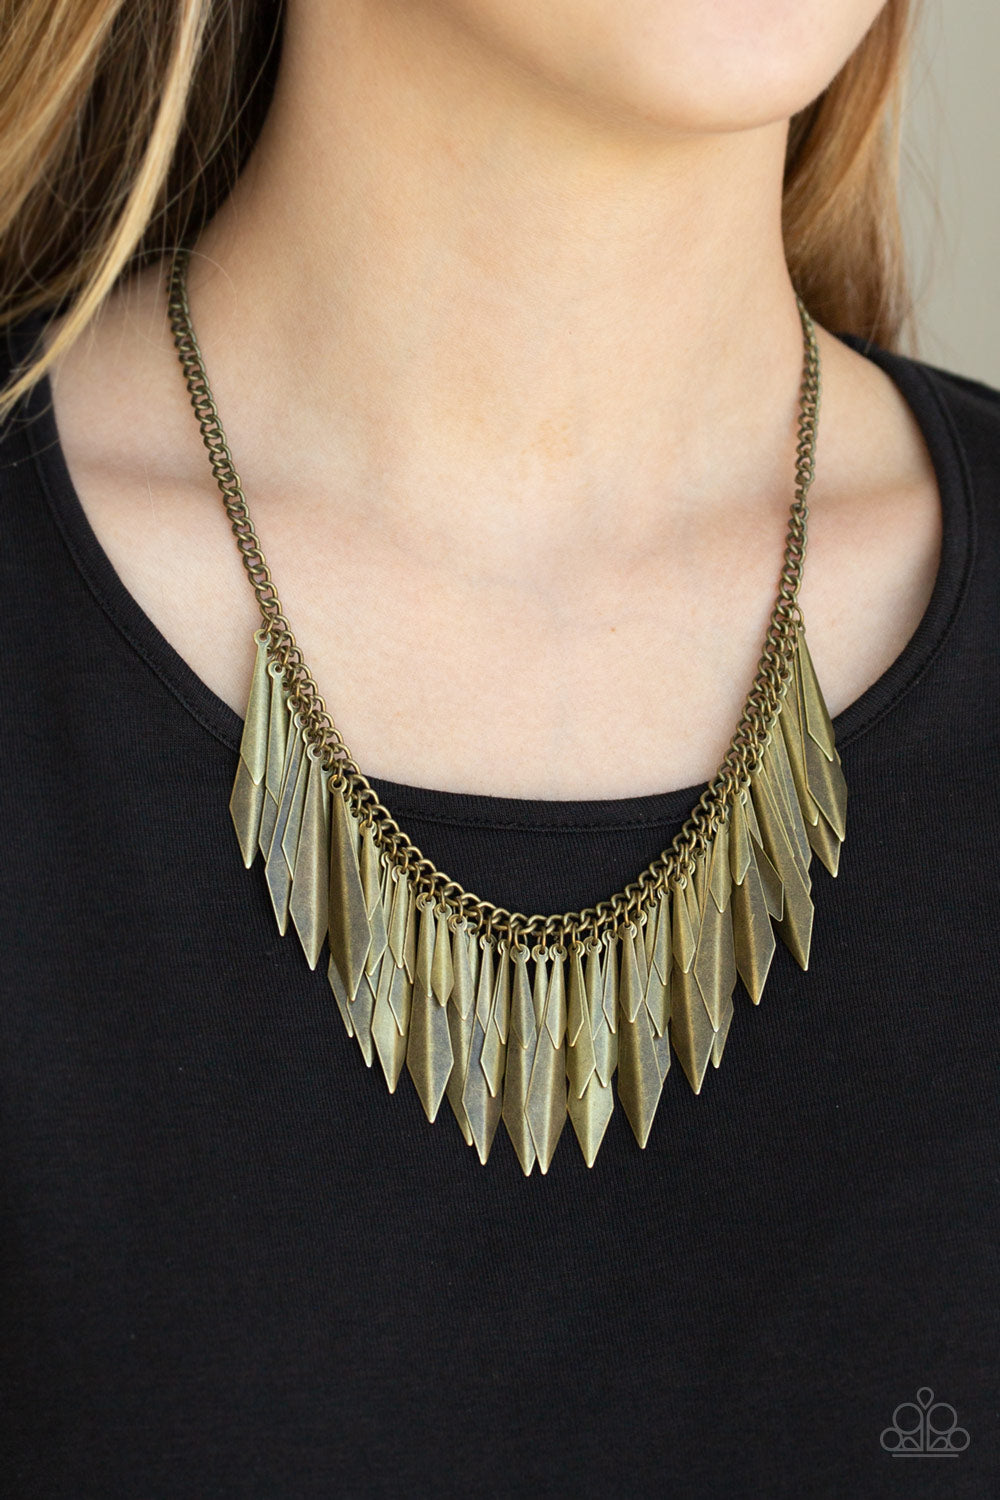 Paparazzi Jewelry & Accessories - The Thrill Seeker - Brass Necklace. Bling By Titia Boutique